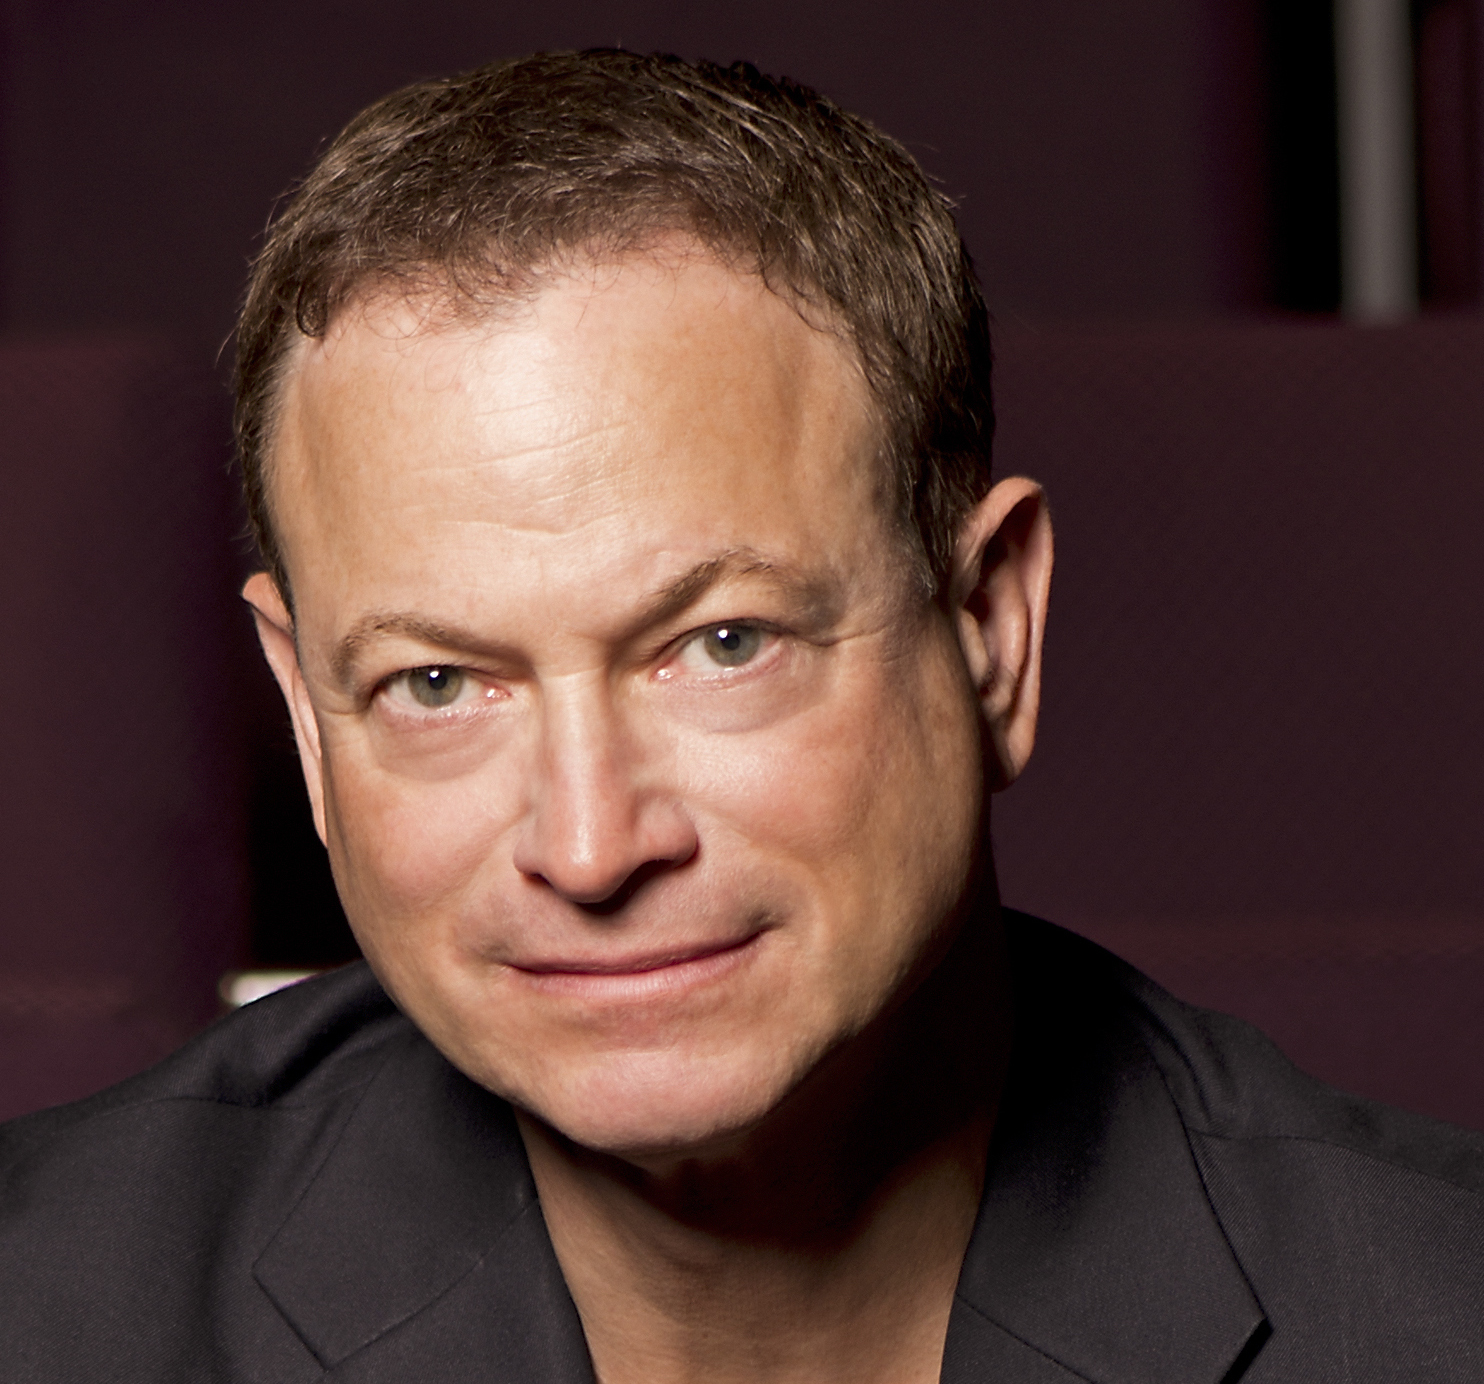 Sinise Headshot3 copy